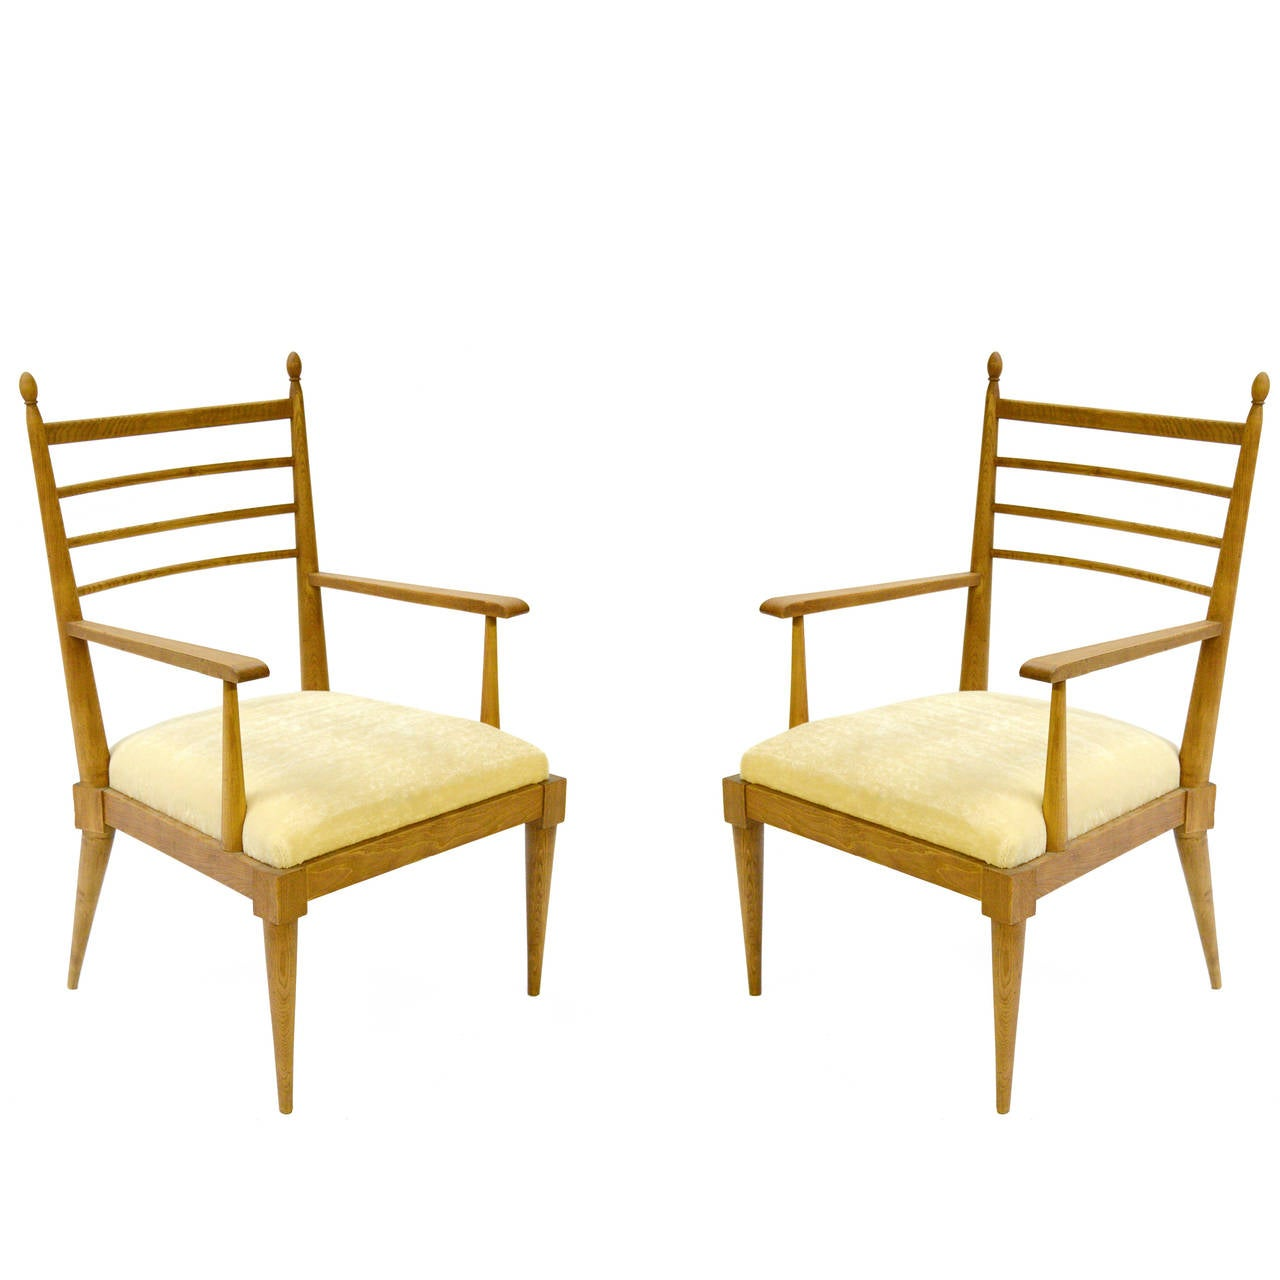 Pair of Vintage Oak Armchairs by Jean Royère 1